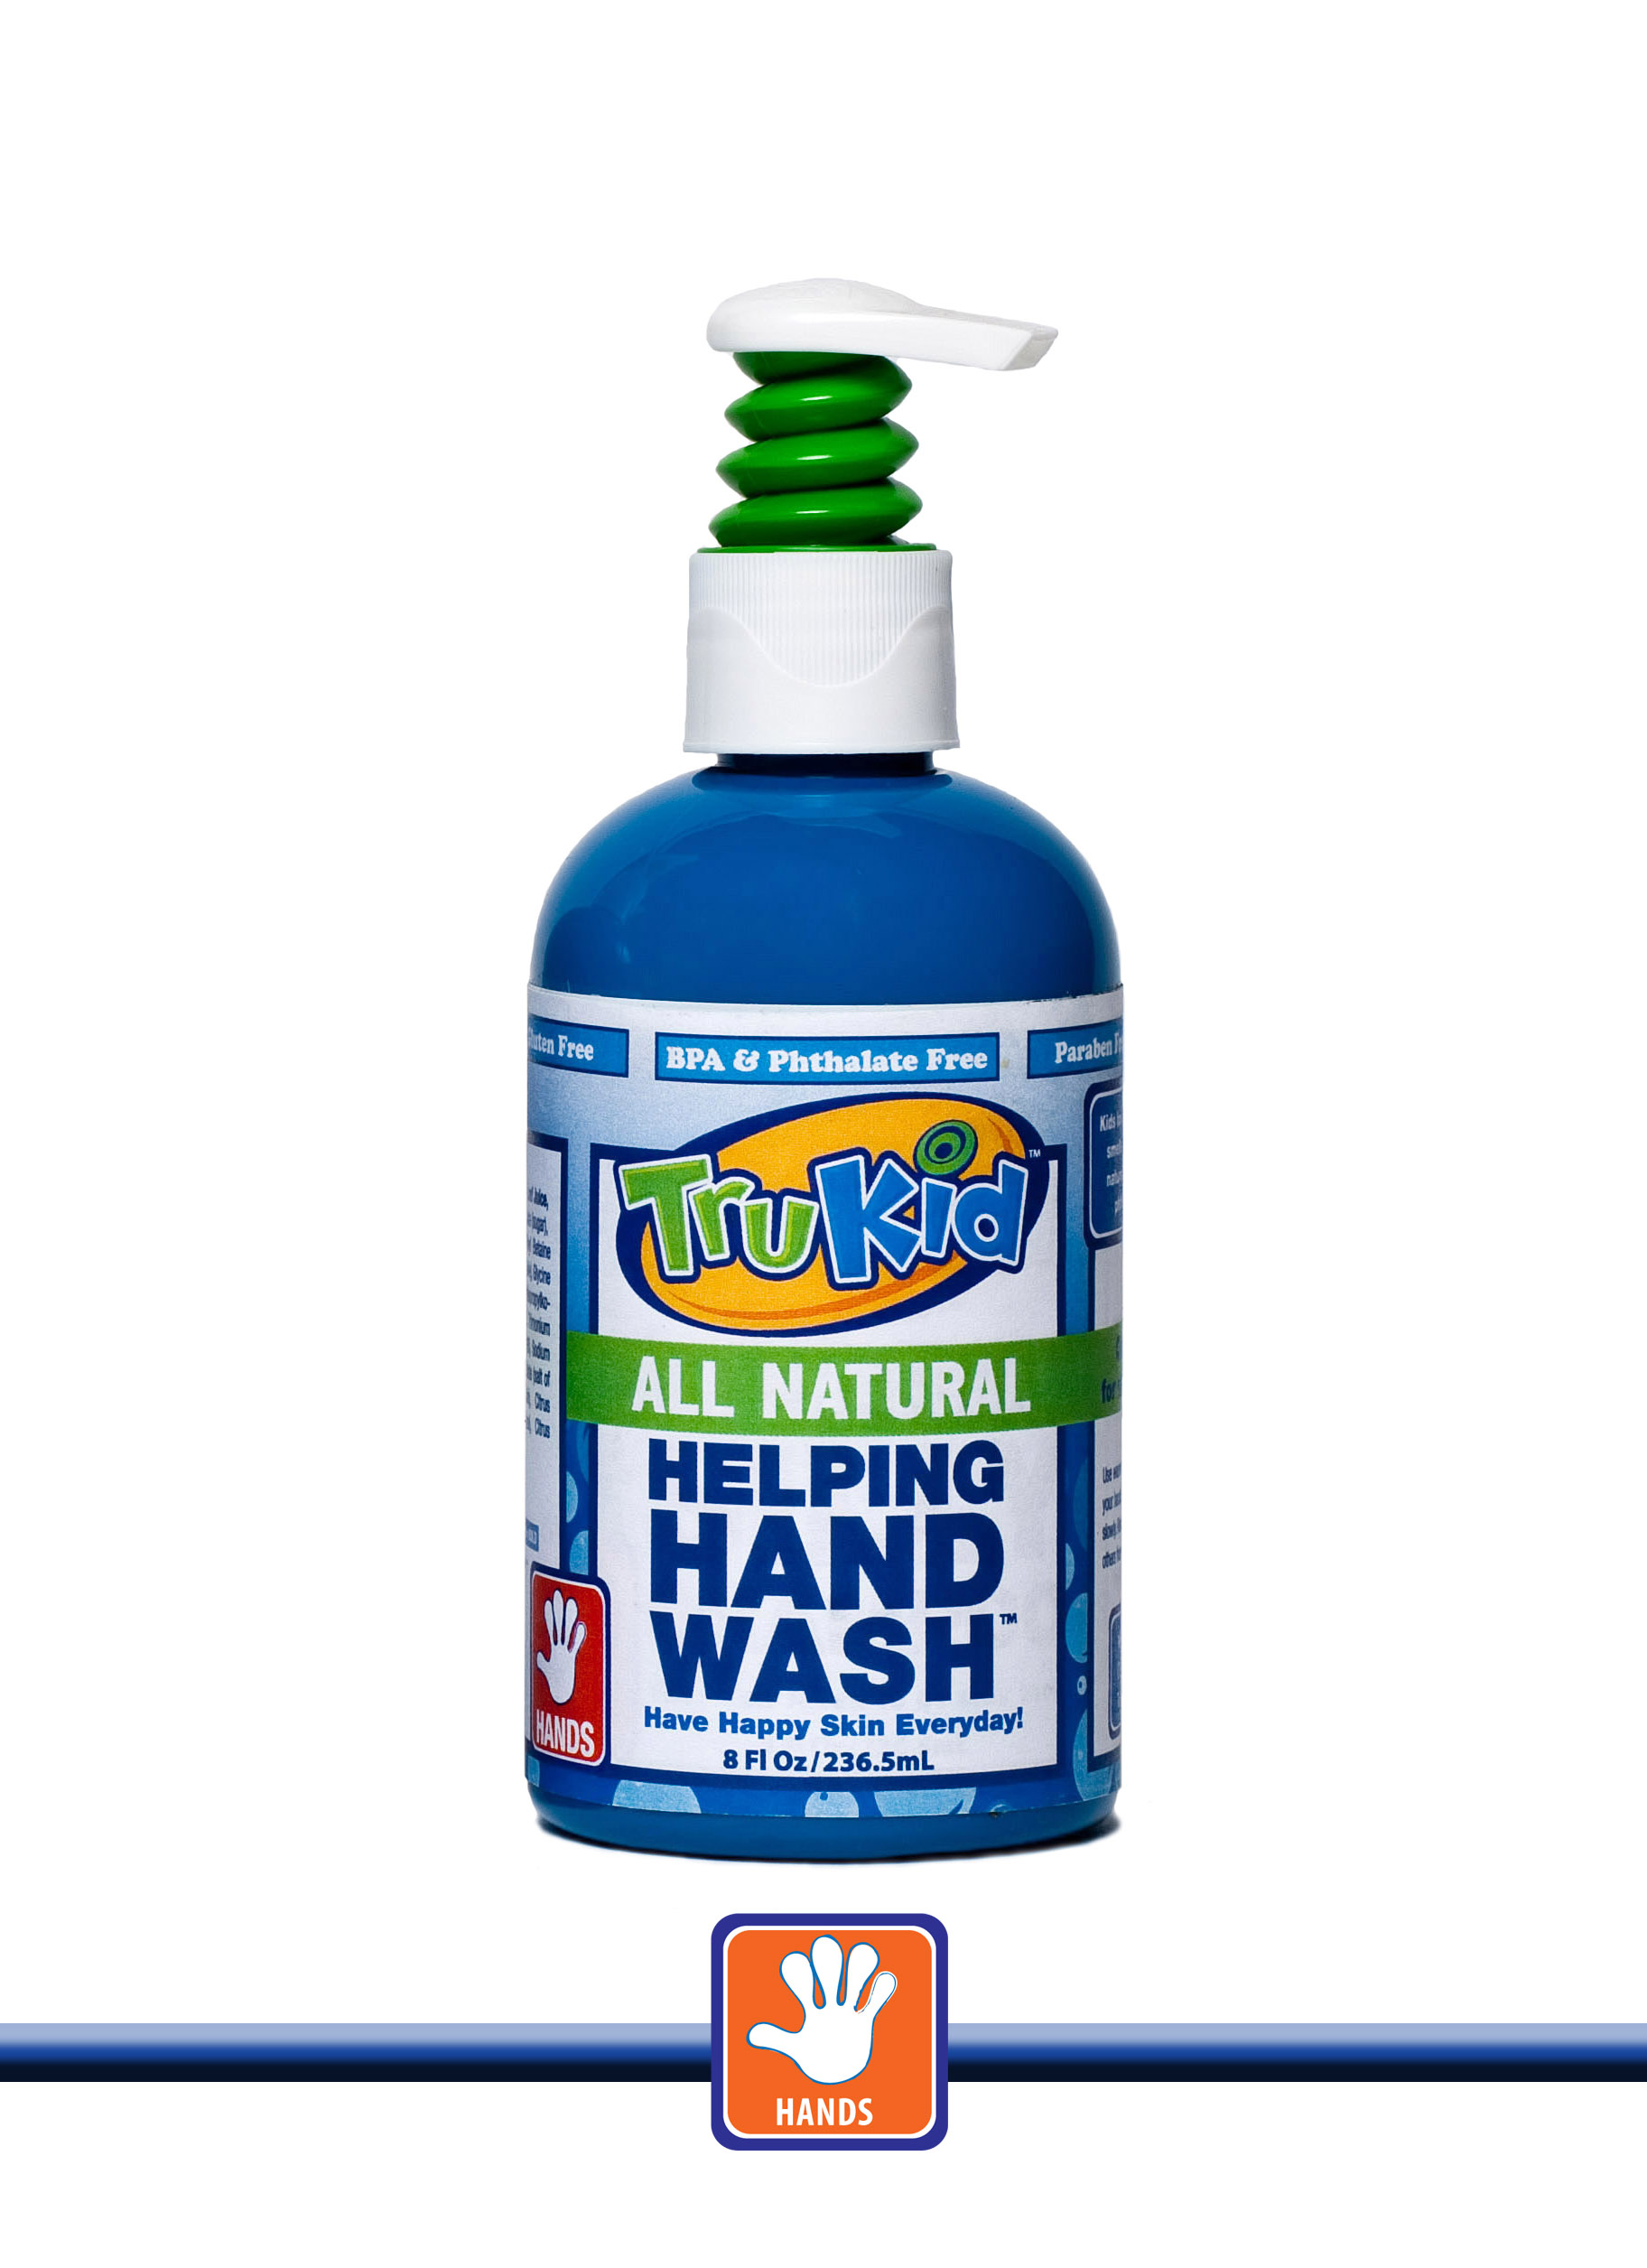 New trukid helping hand wash now available